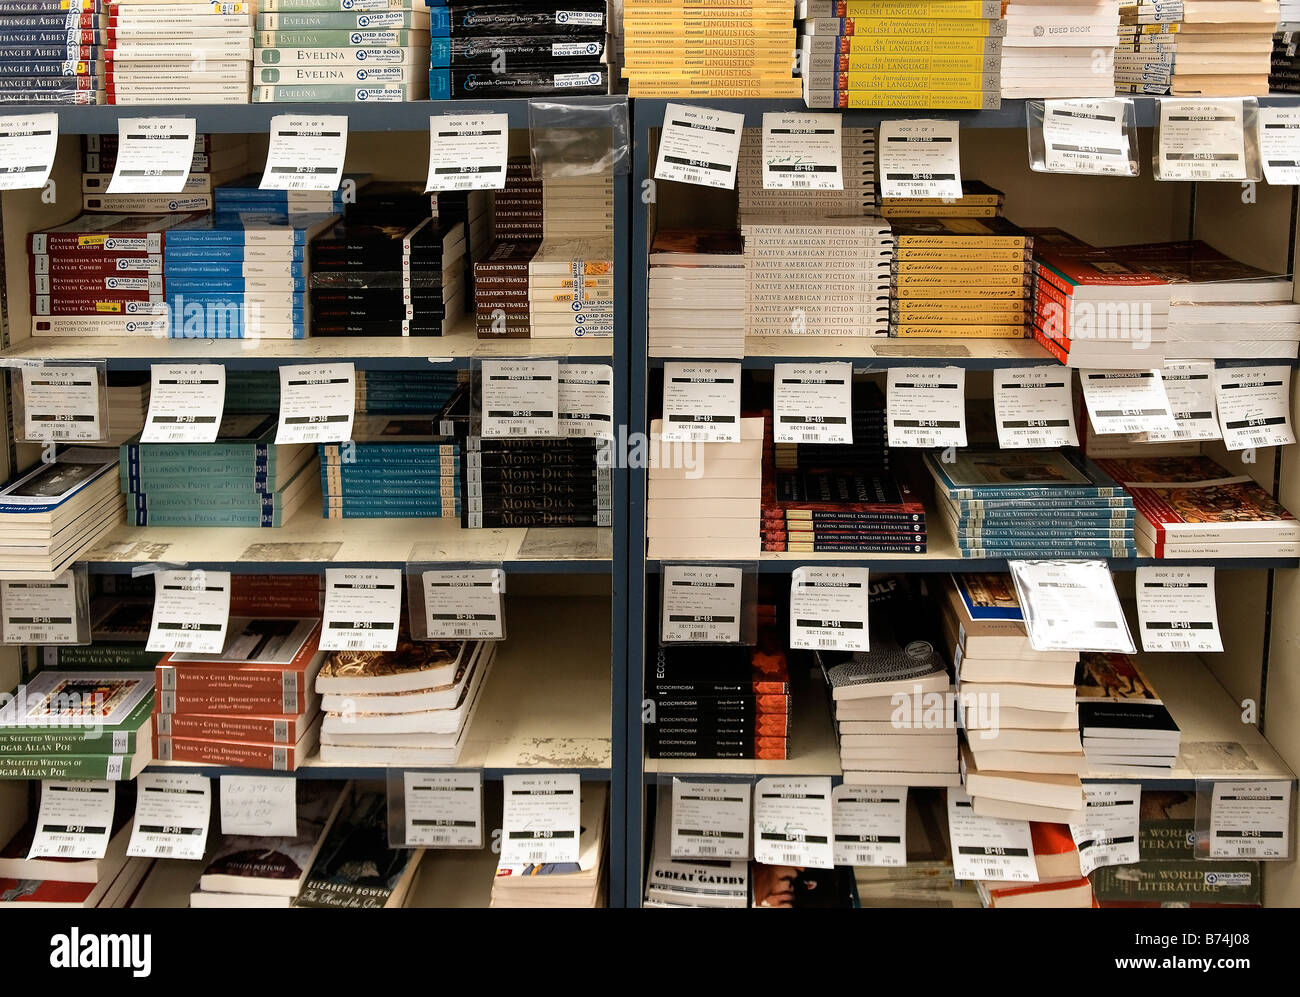 College textbooks for sale in a school bookstore - Stock Image